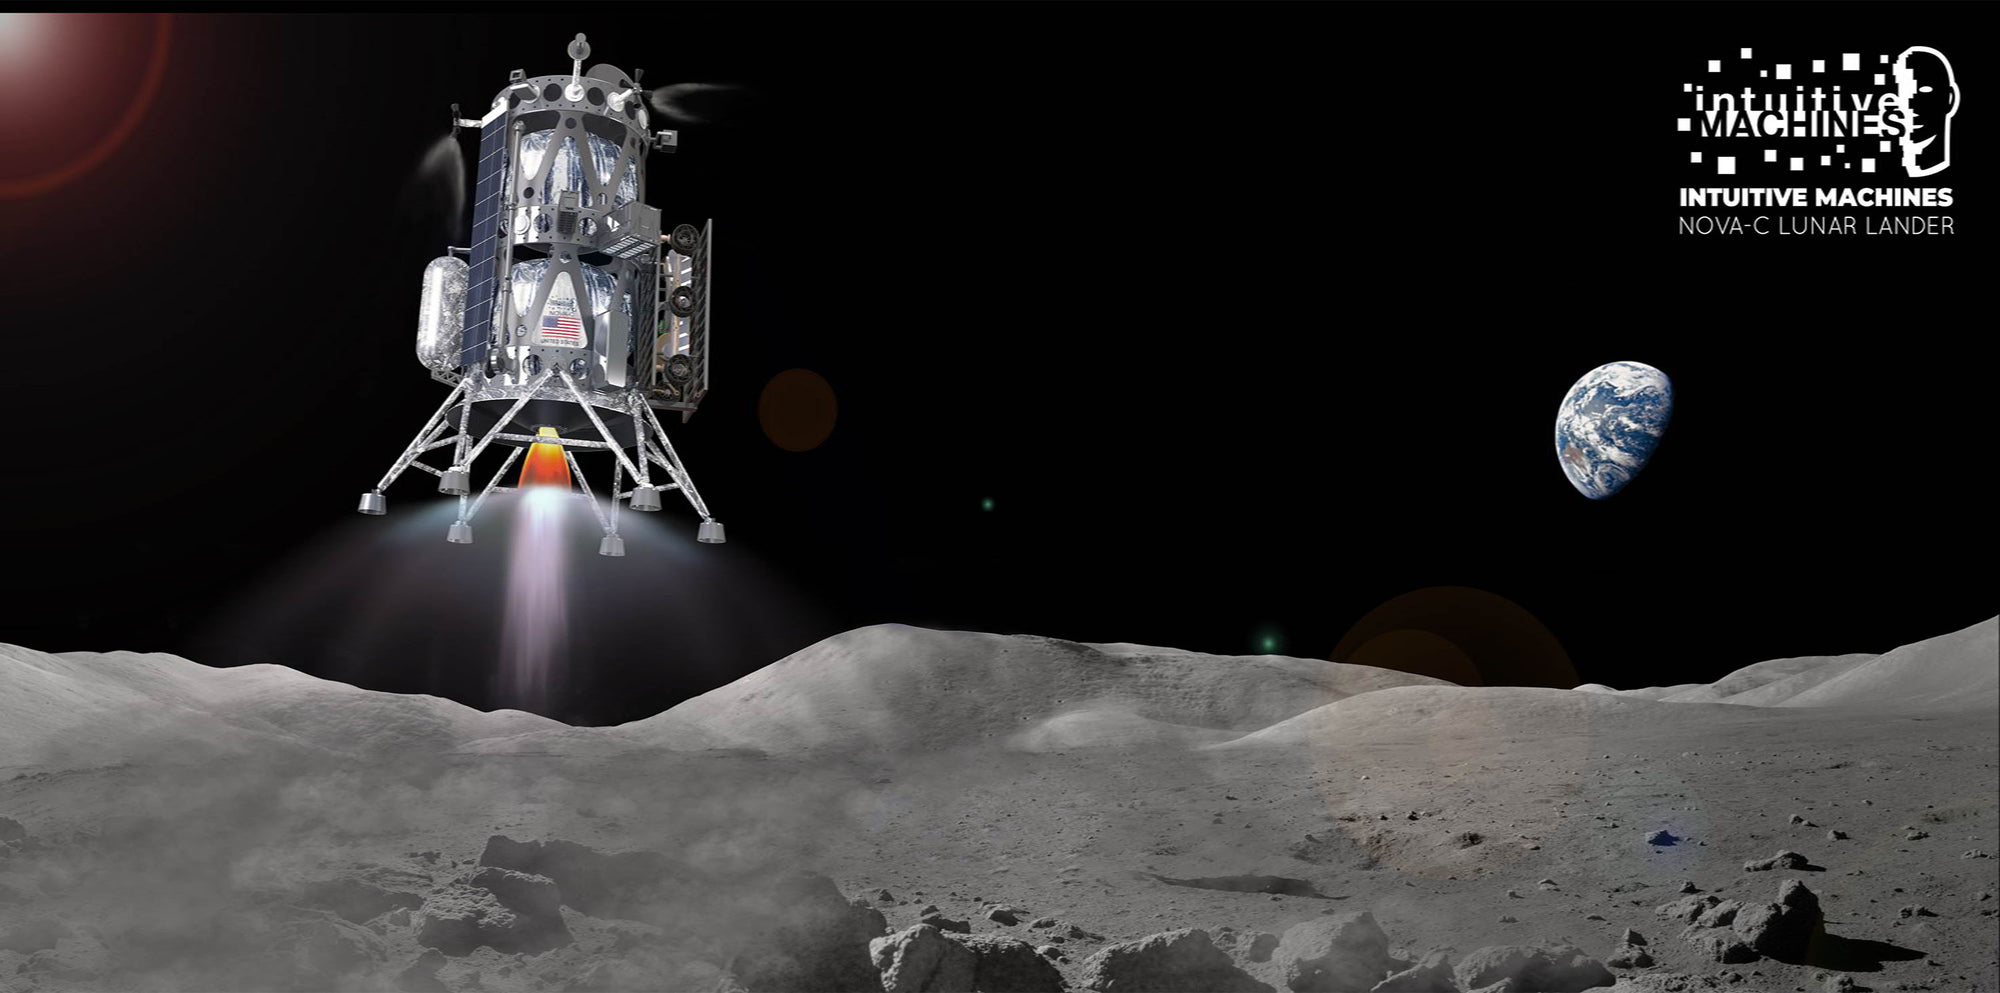 SpaceX Falcon 9 rocket will launch Intuitive Machines' NOVA-C lunar lander